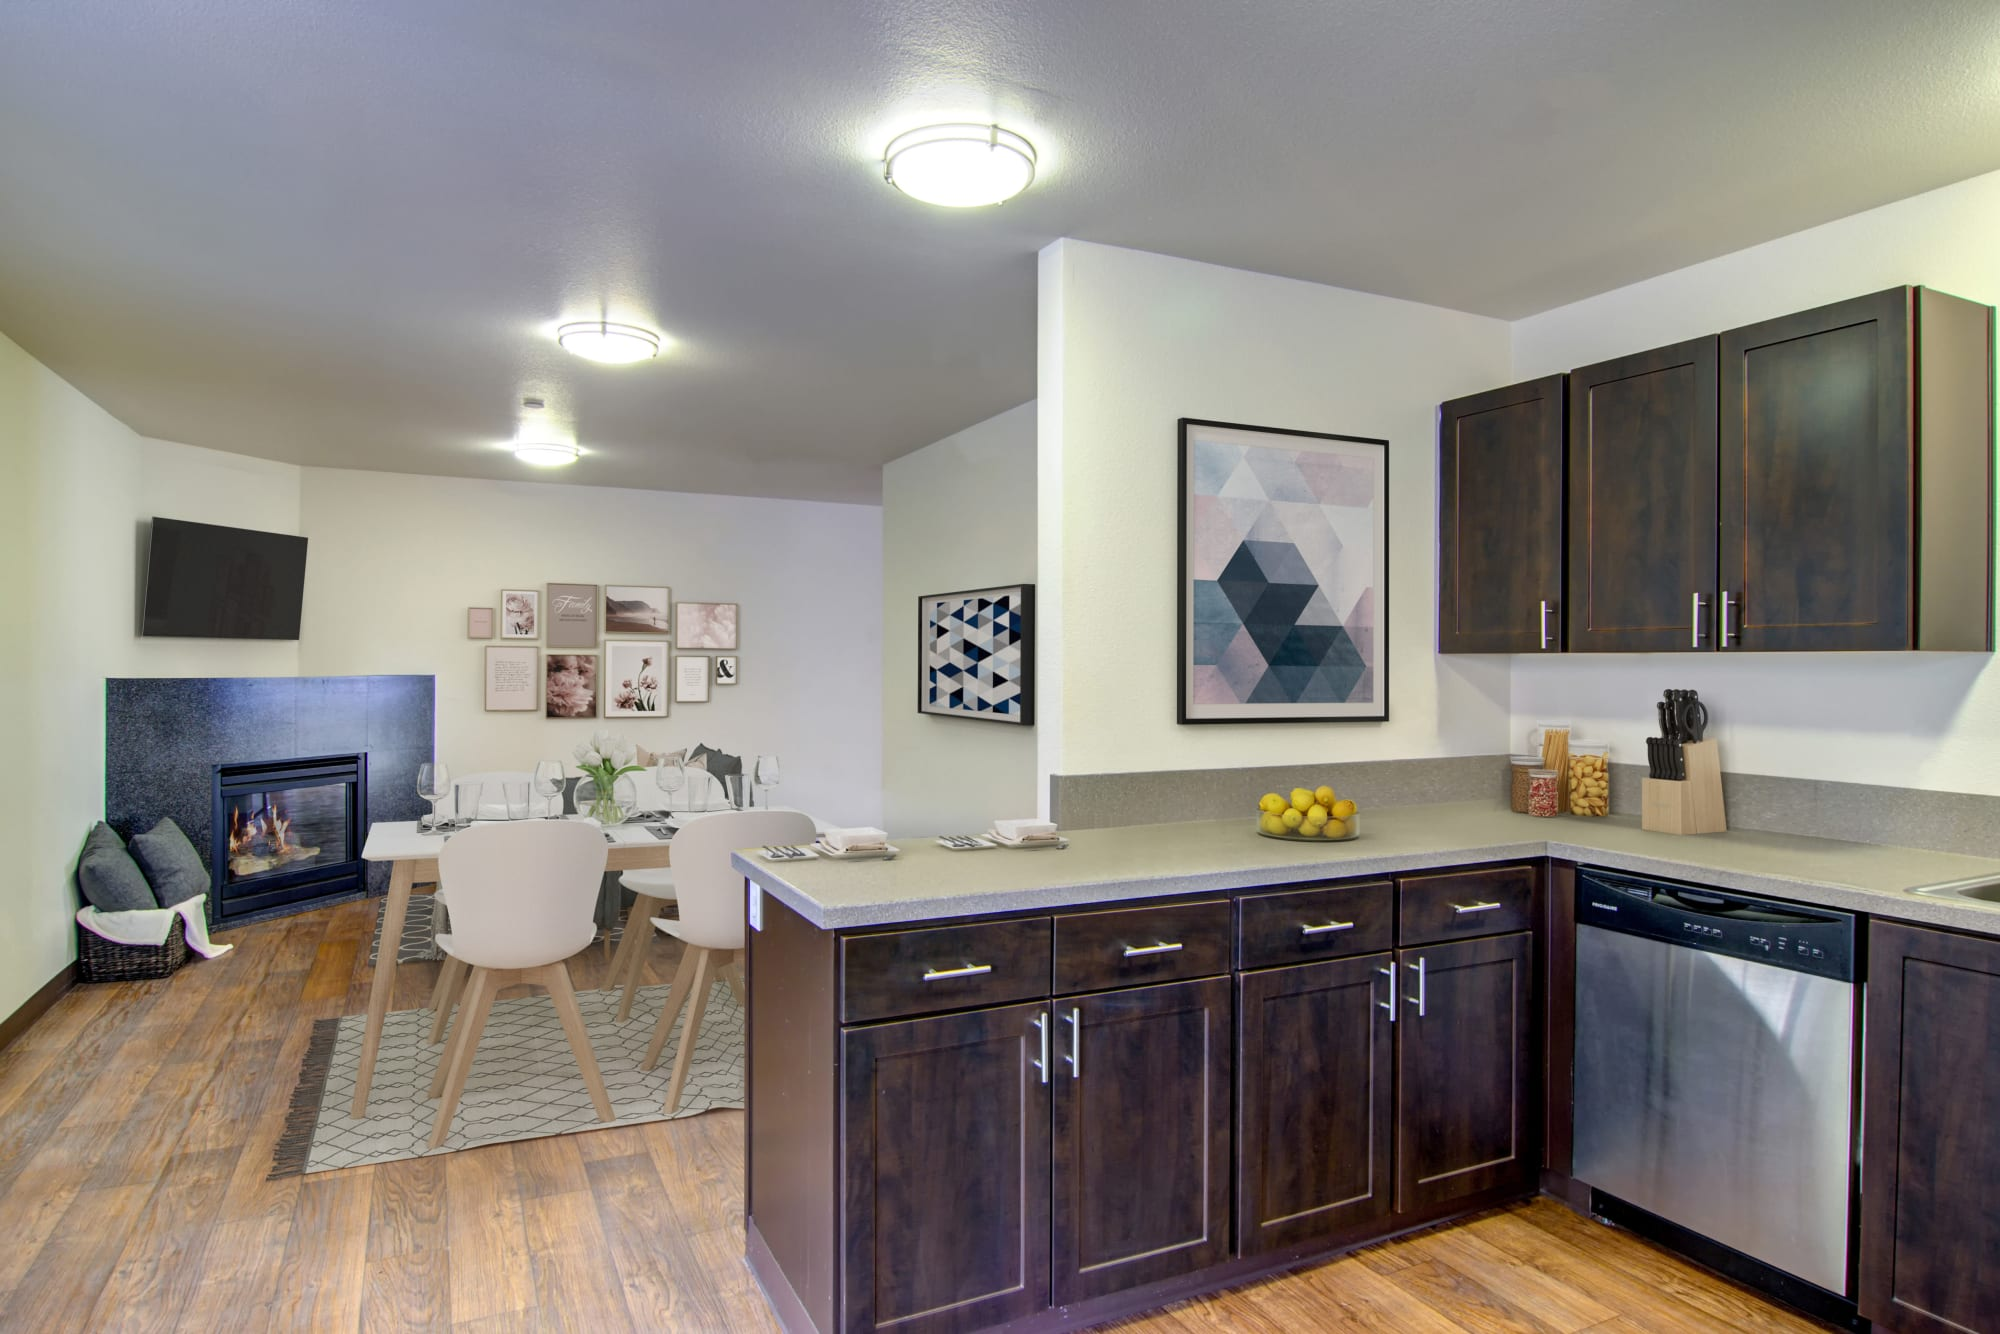 Renovated kitchen looking into a dining room with a fireplace at The Addison Apartments in Vancouver, Washington